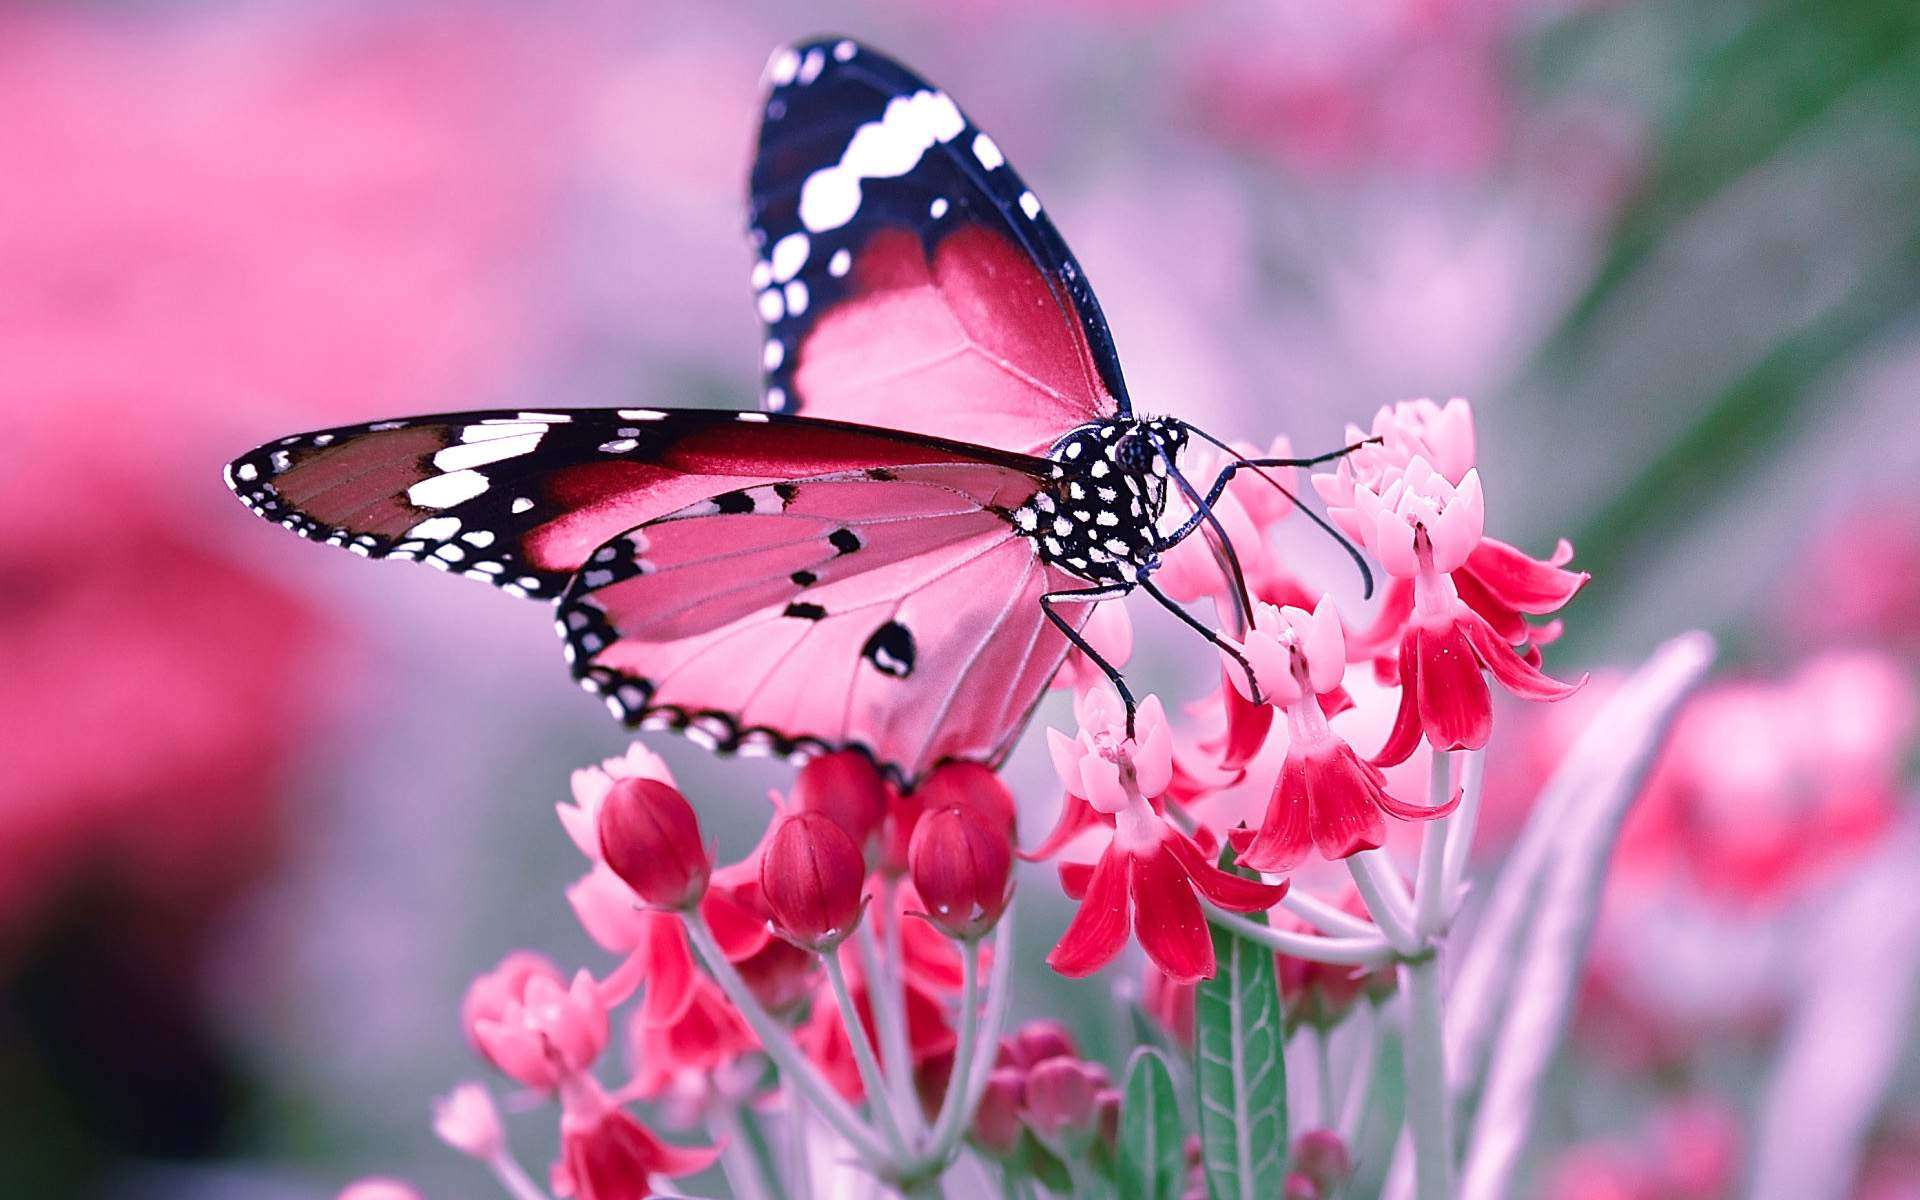 butterfly-wallpaper-high-quality-For-Desktop-Wallpaper.jpg